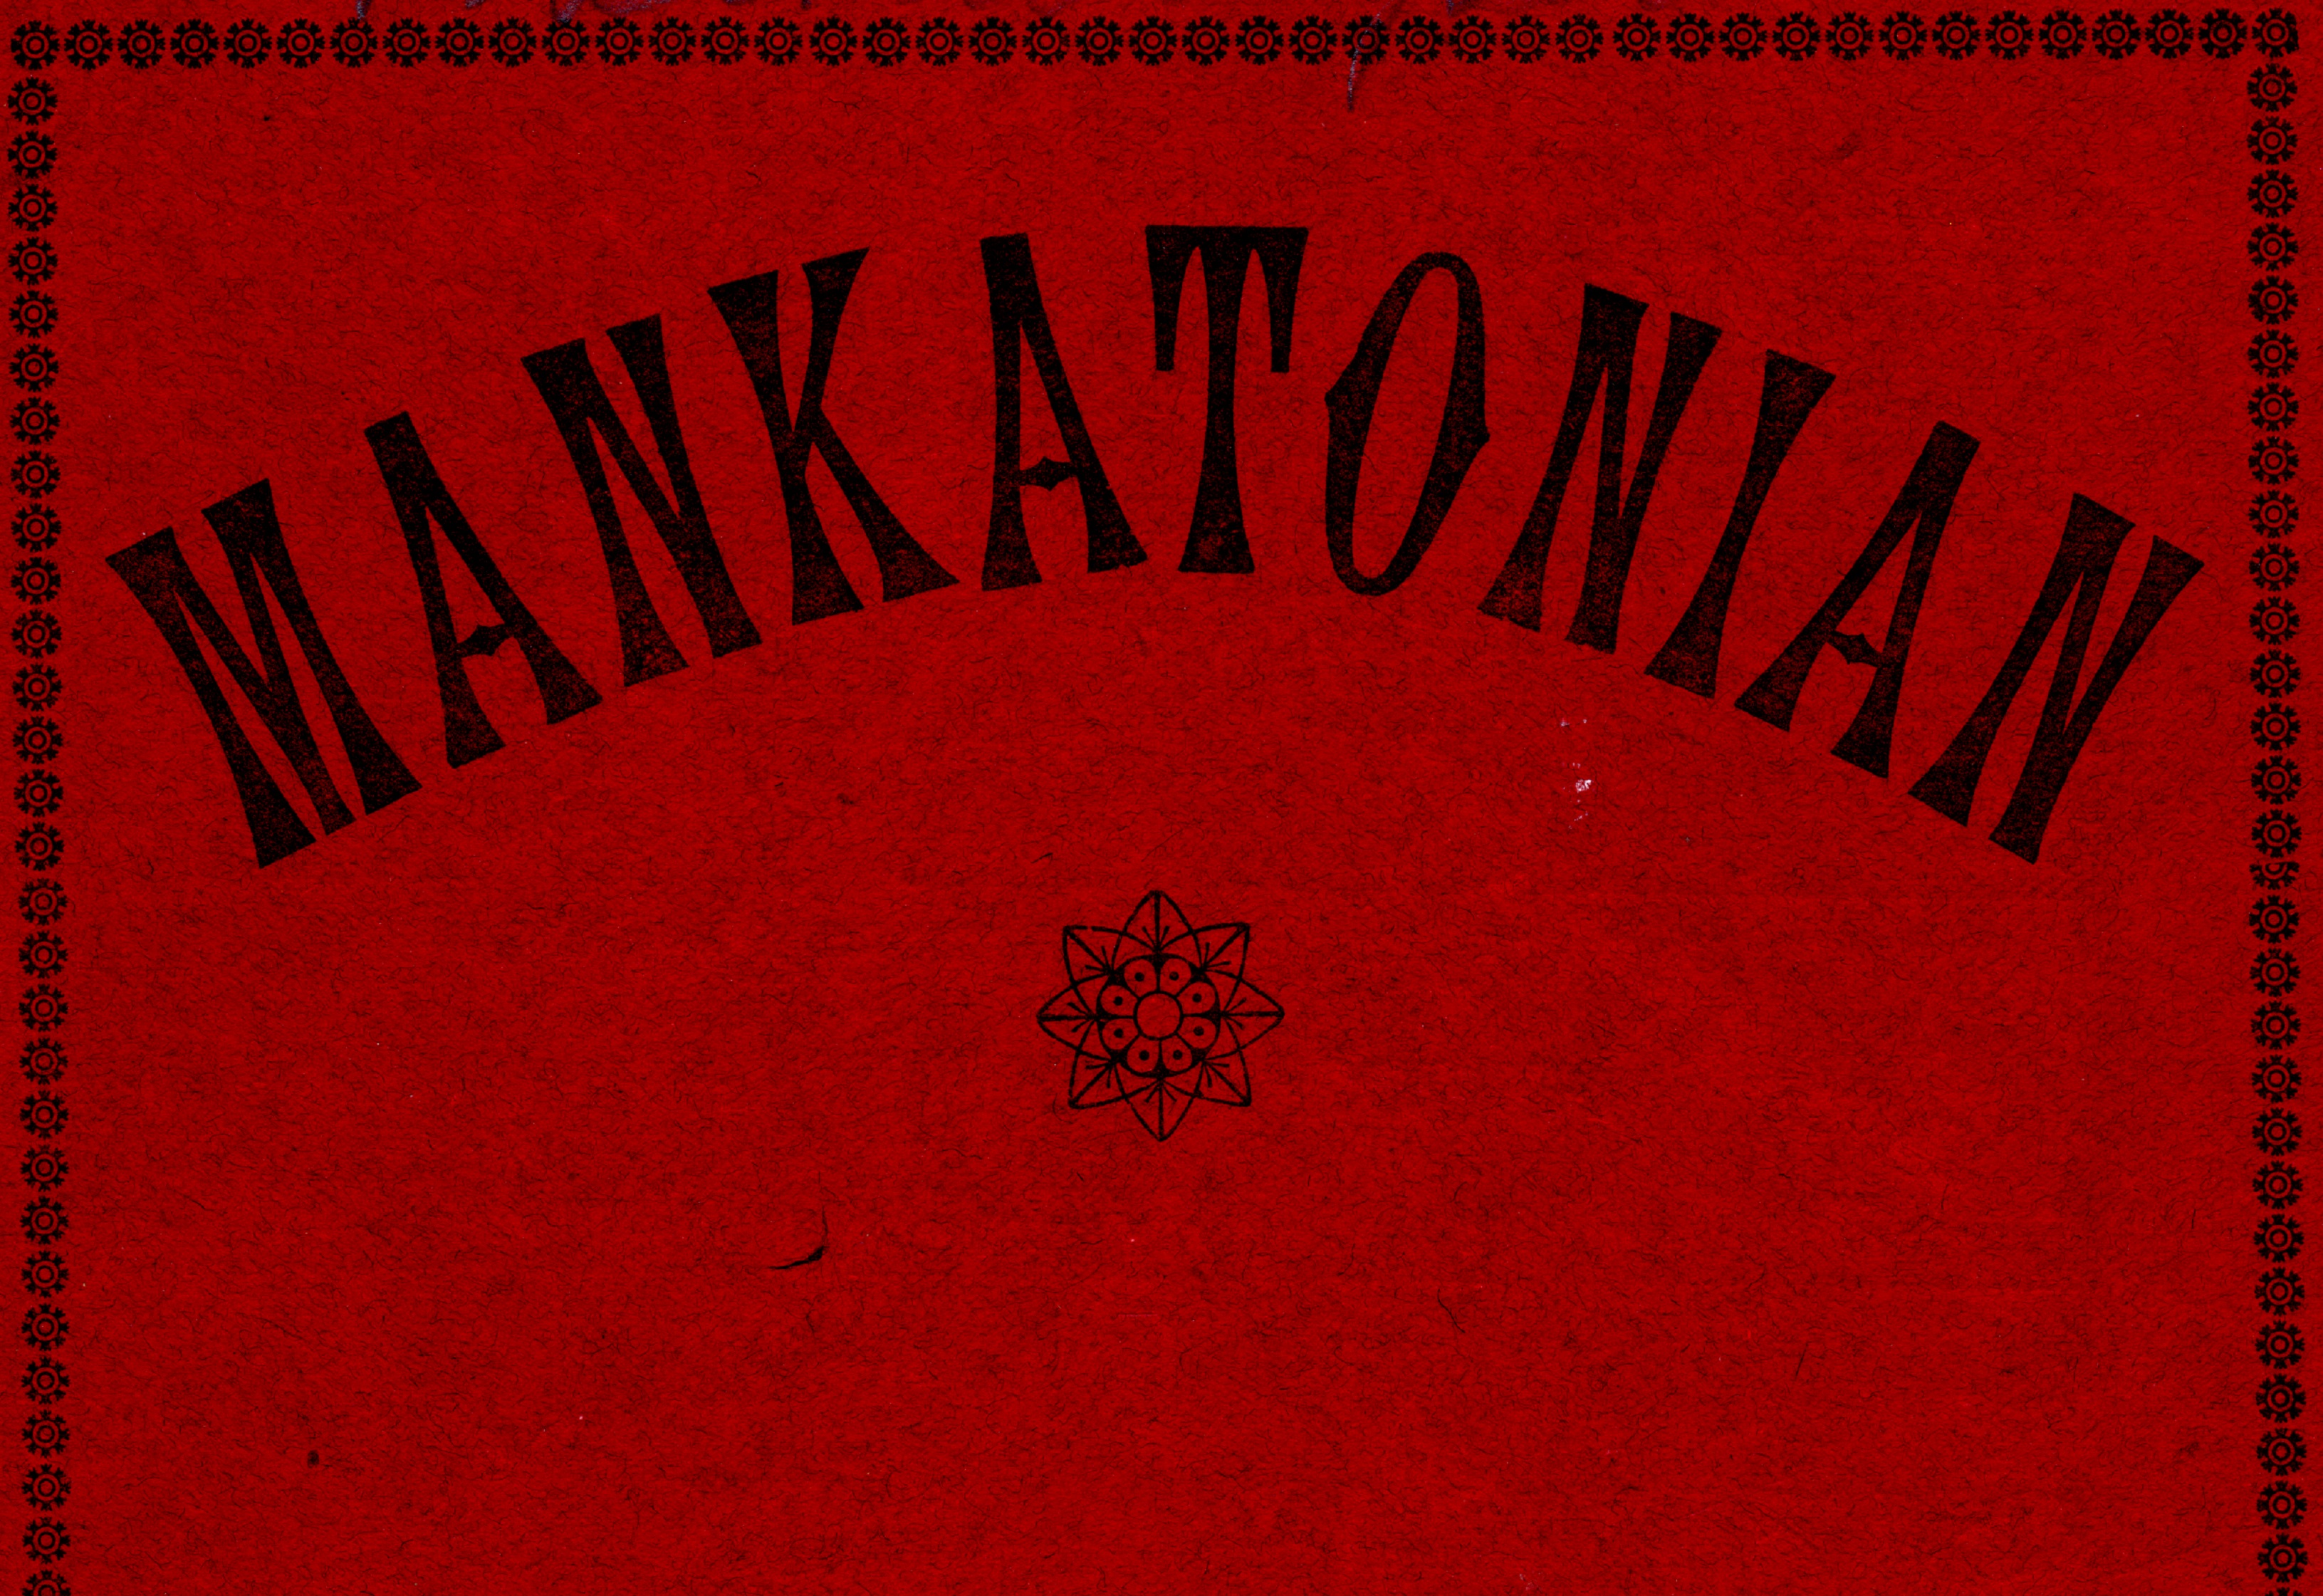 1891-1913: The Mankatonian